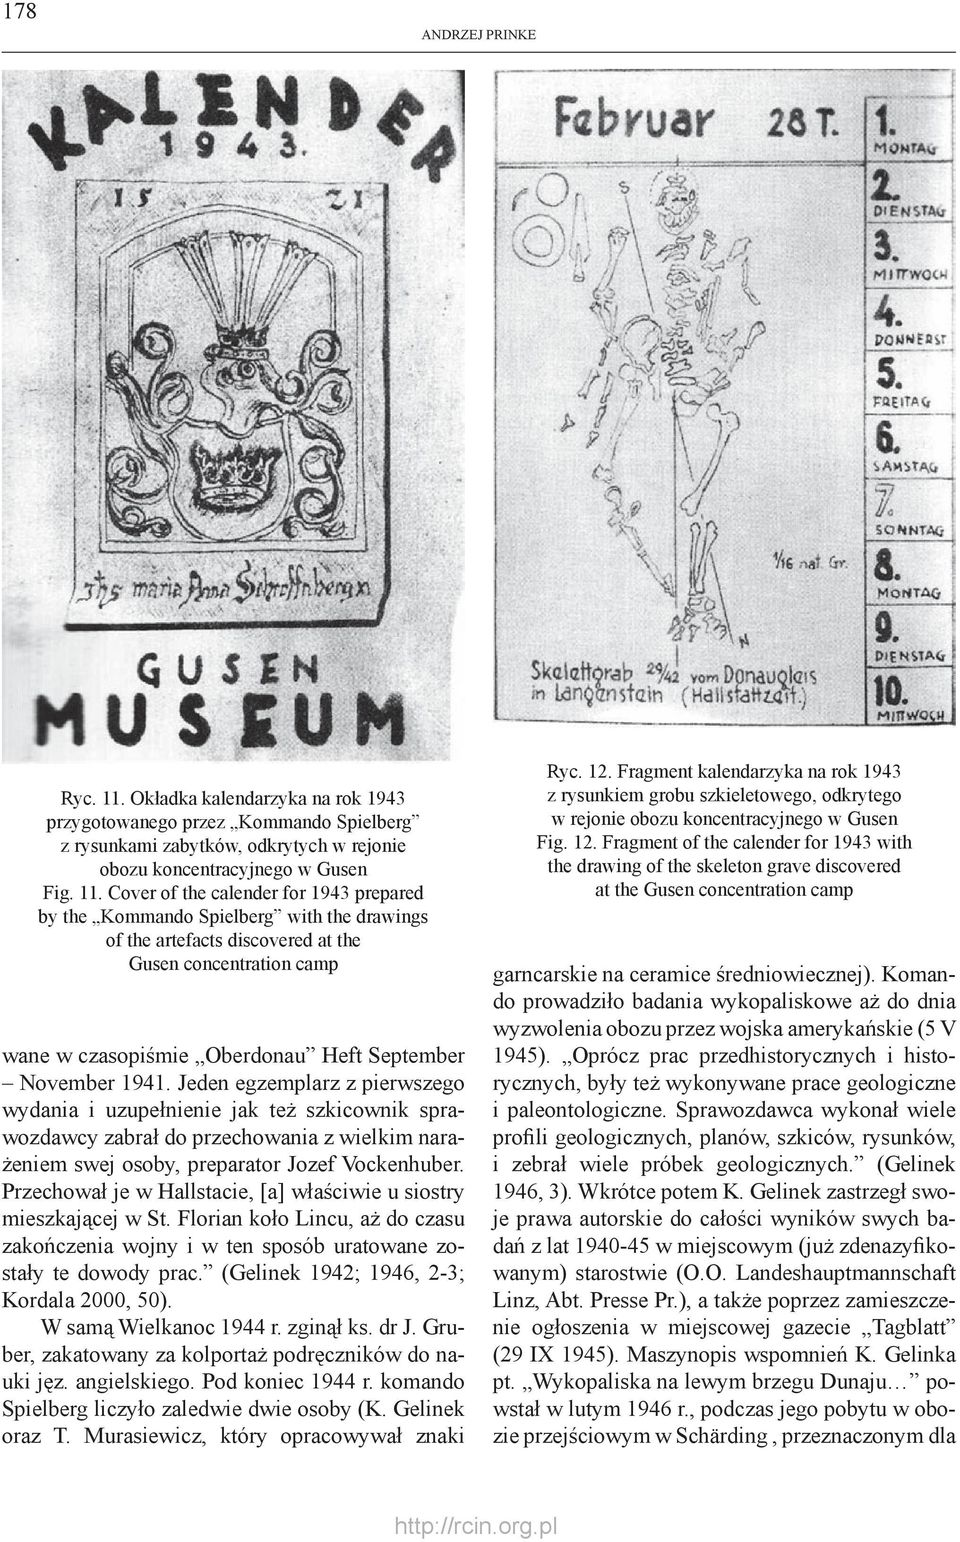 Cover of the calender for 1943 prepared by the Kommando Spielberg with the drawings of the artefacts discovered at the Gusen concentration camp wane w czasopiśmie Oberdonau Heft September November